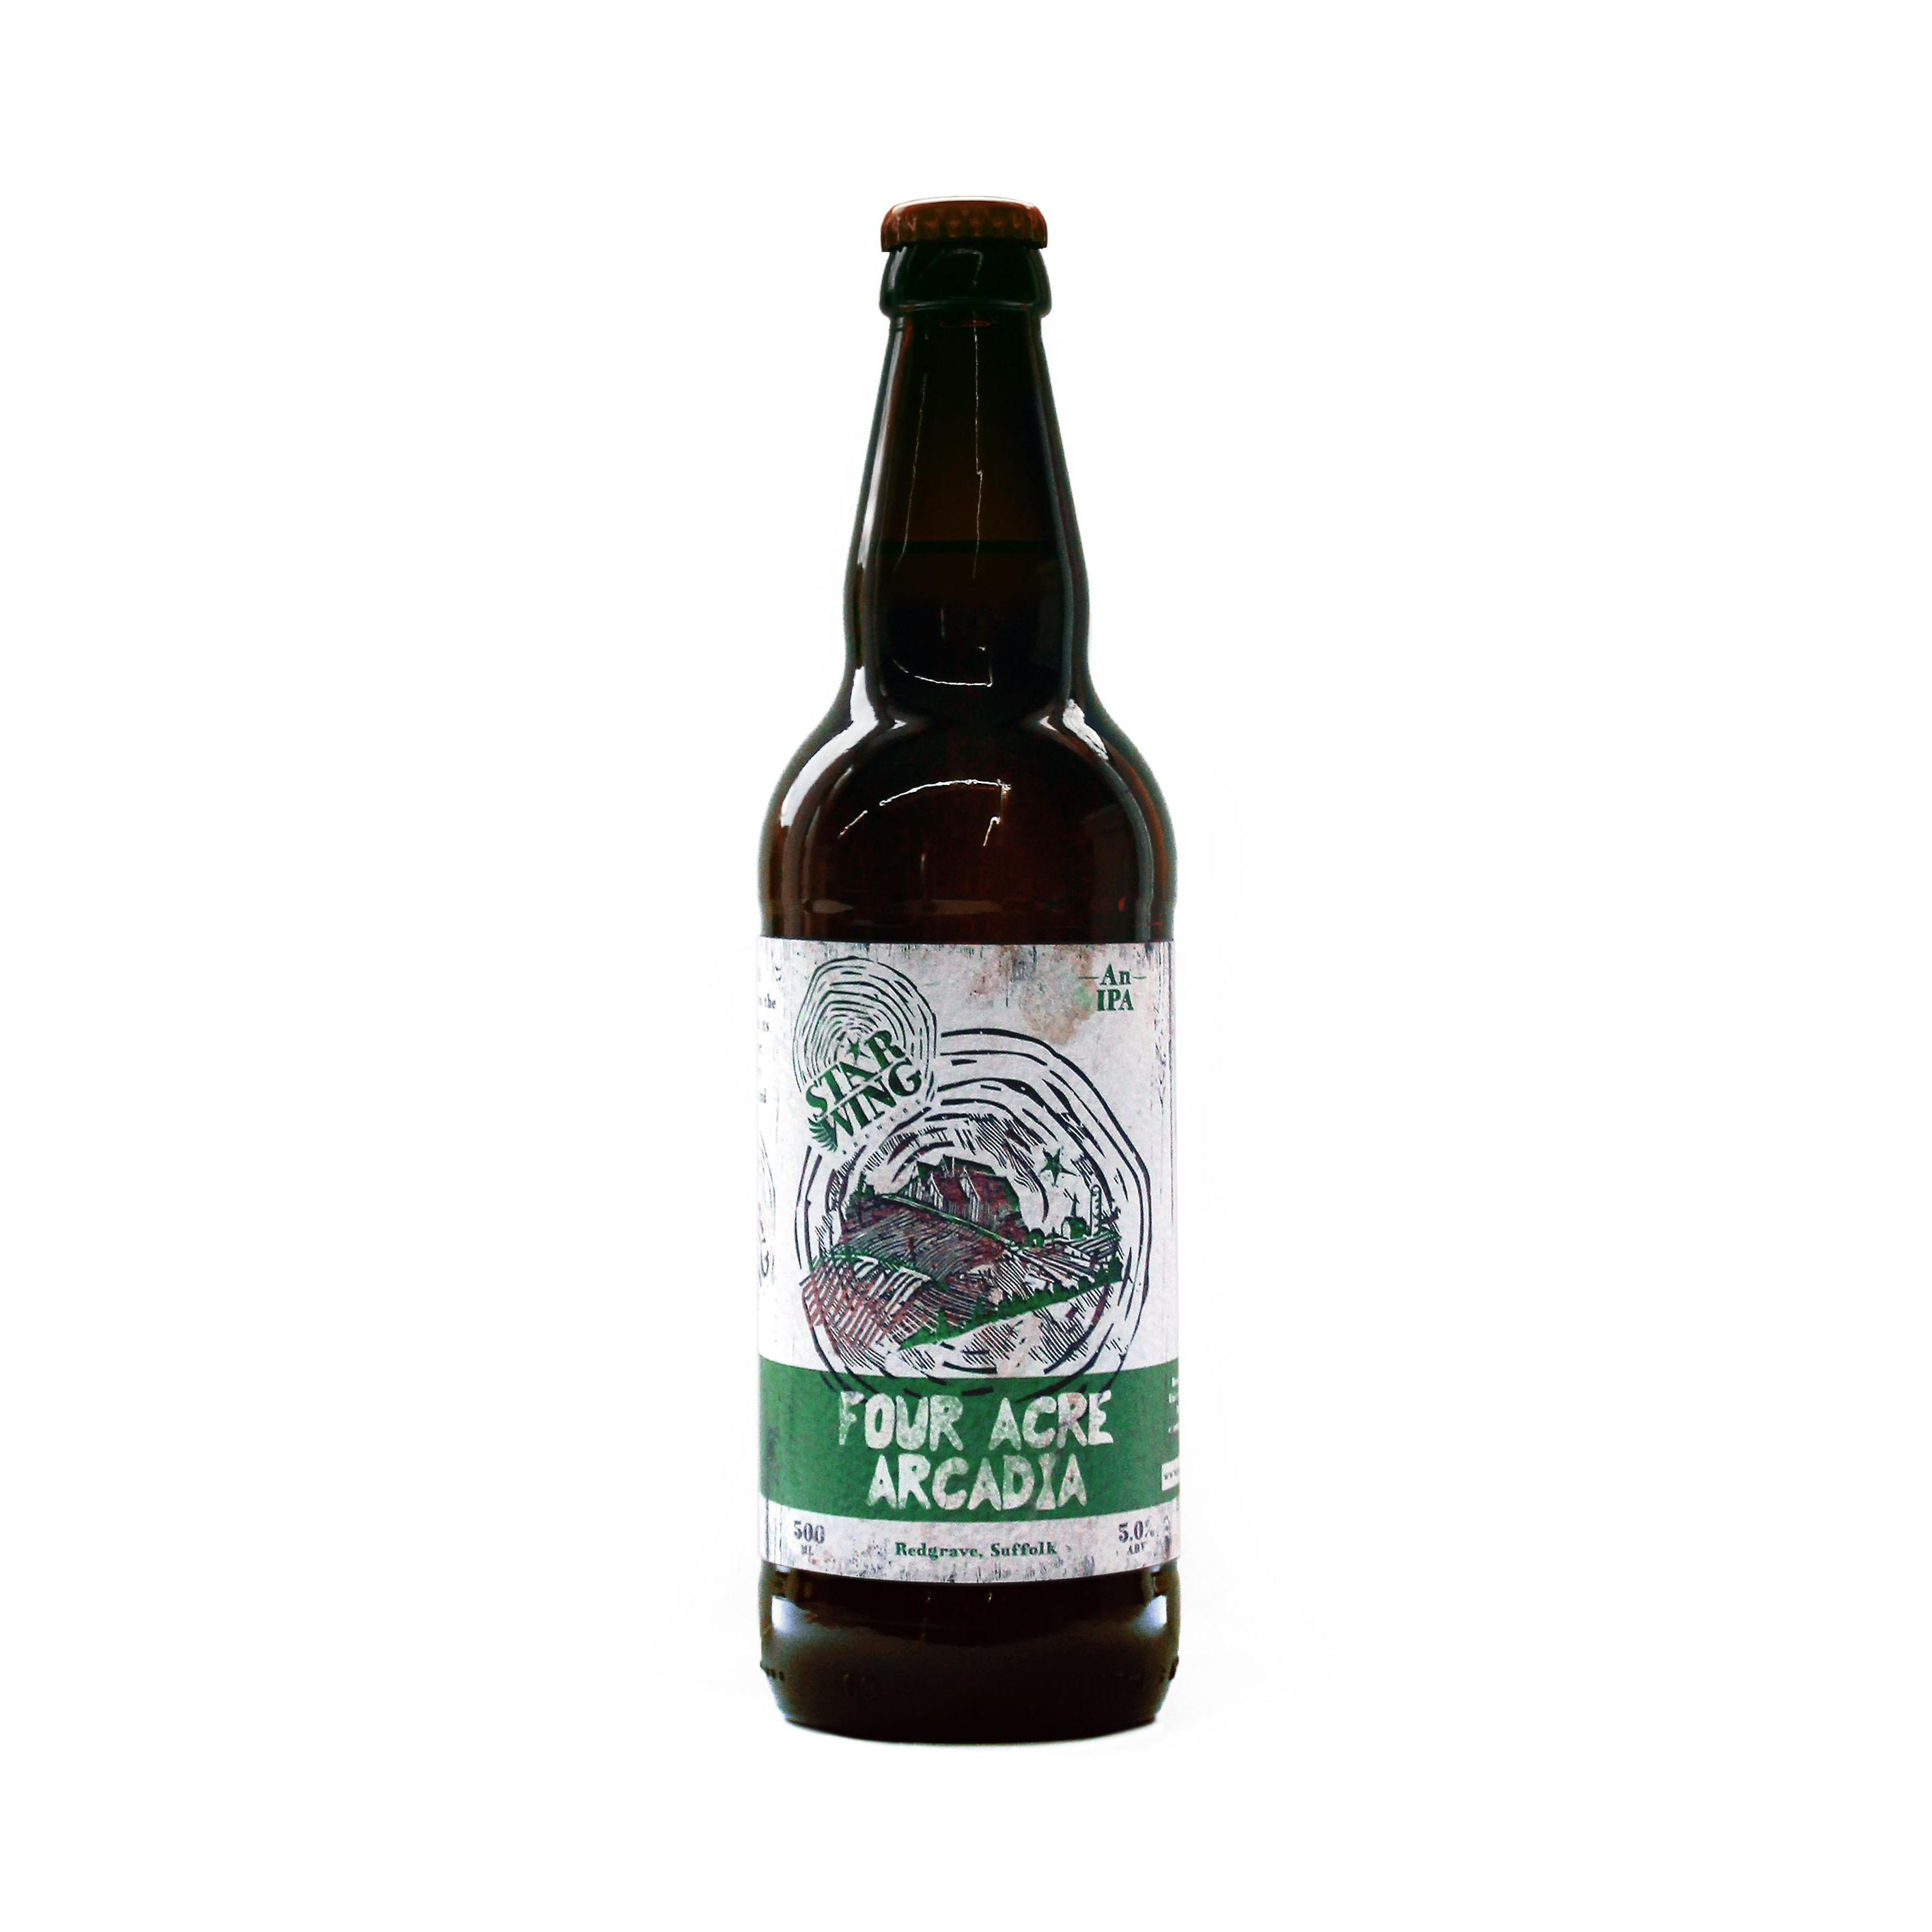 A 500ml bottle of delicious Star Wing Brewery's Four Acre Arcadia, 5.0% IPA